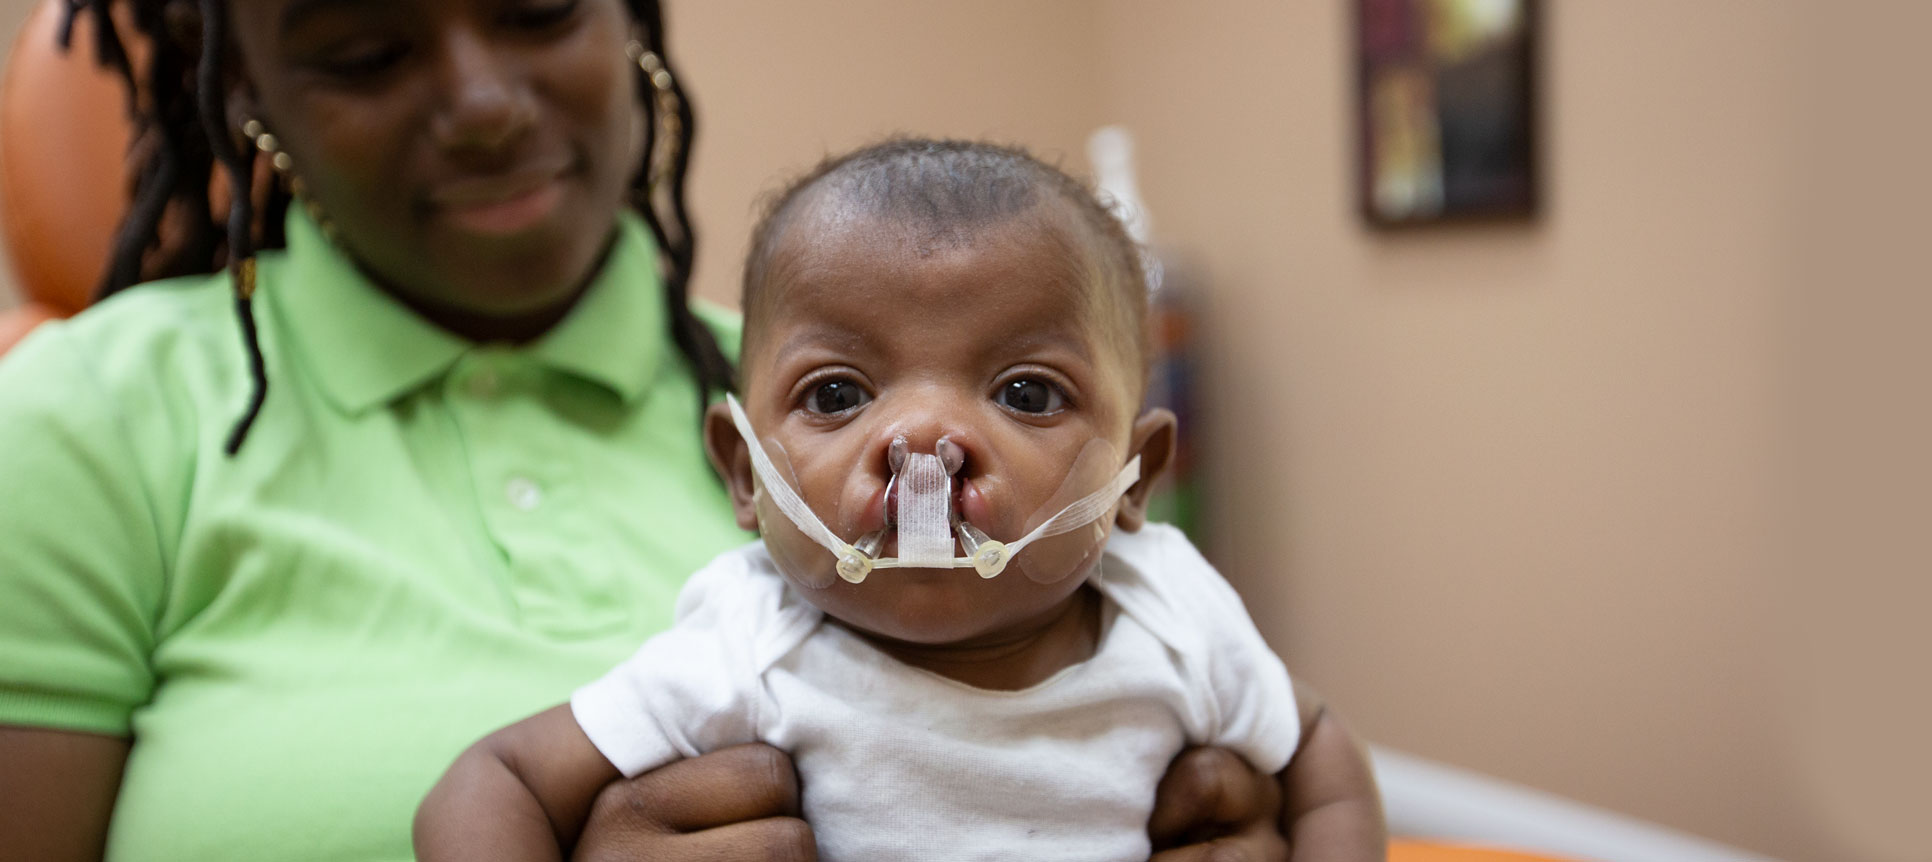 The NAM device slowly brings gum and lip segments together to reduce the number of surgeries required to fix a cleft. Results are more symmetrical when using a NAM device.